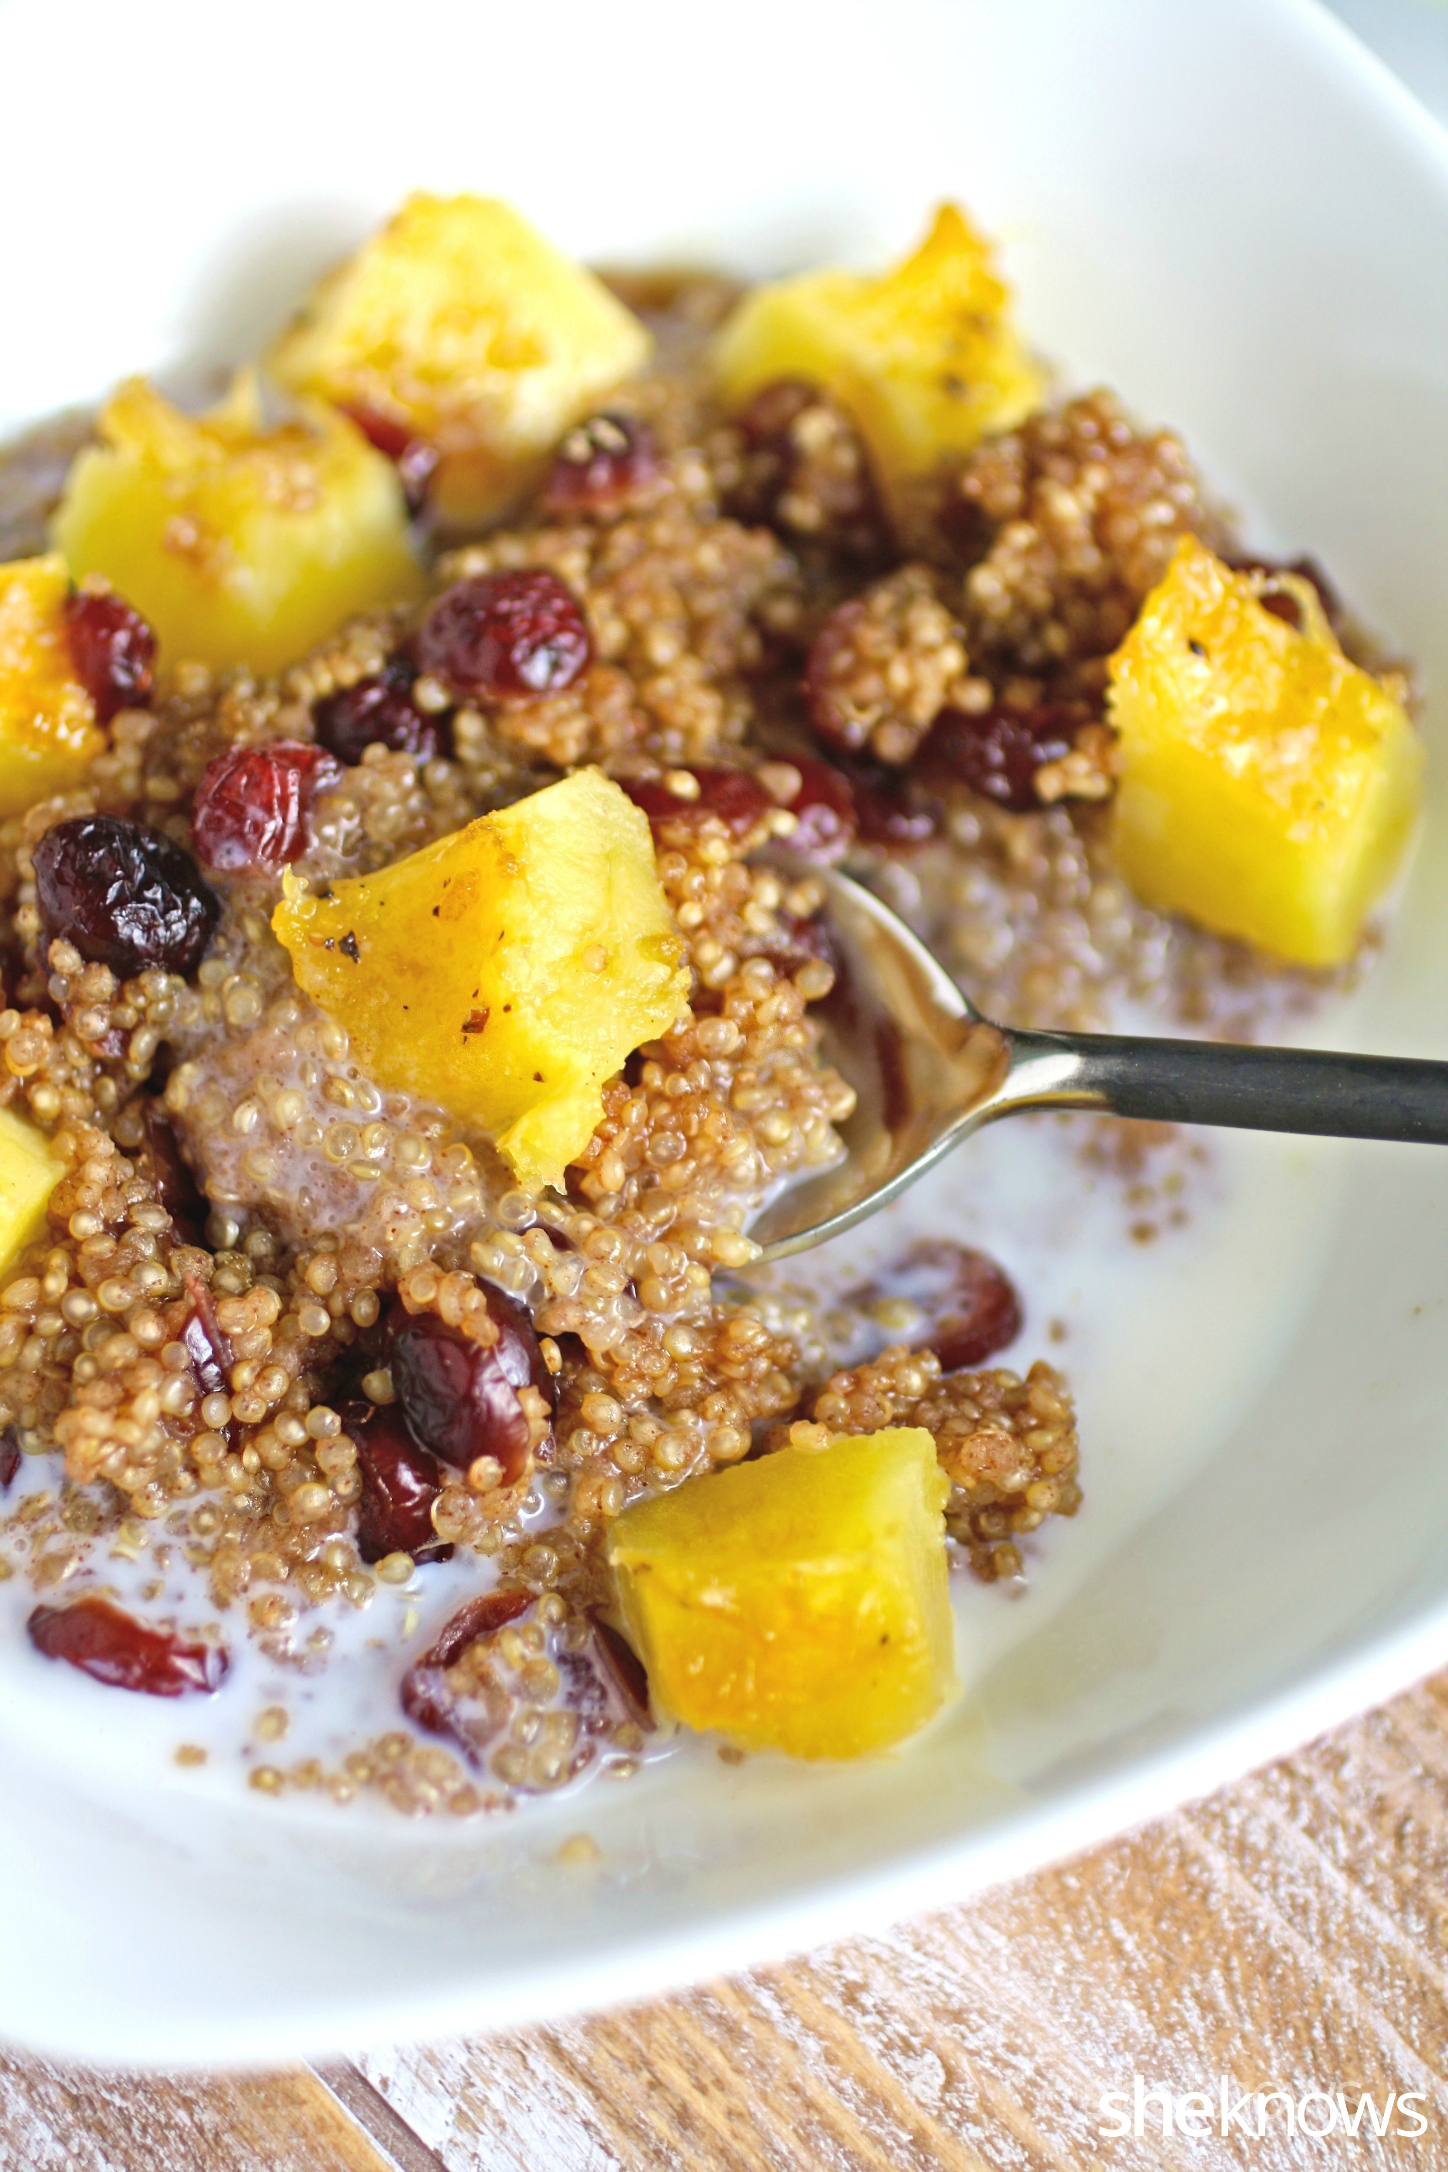 Sit down to breakfast with creamy cinnamon quinoa and acorn squash breakfast bowl